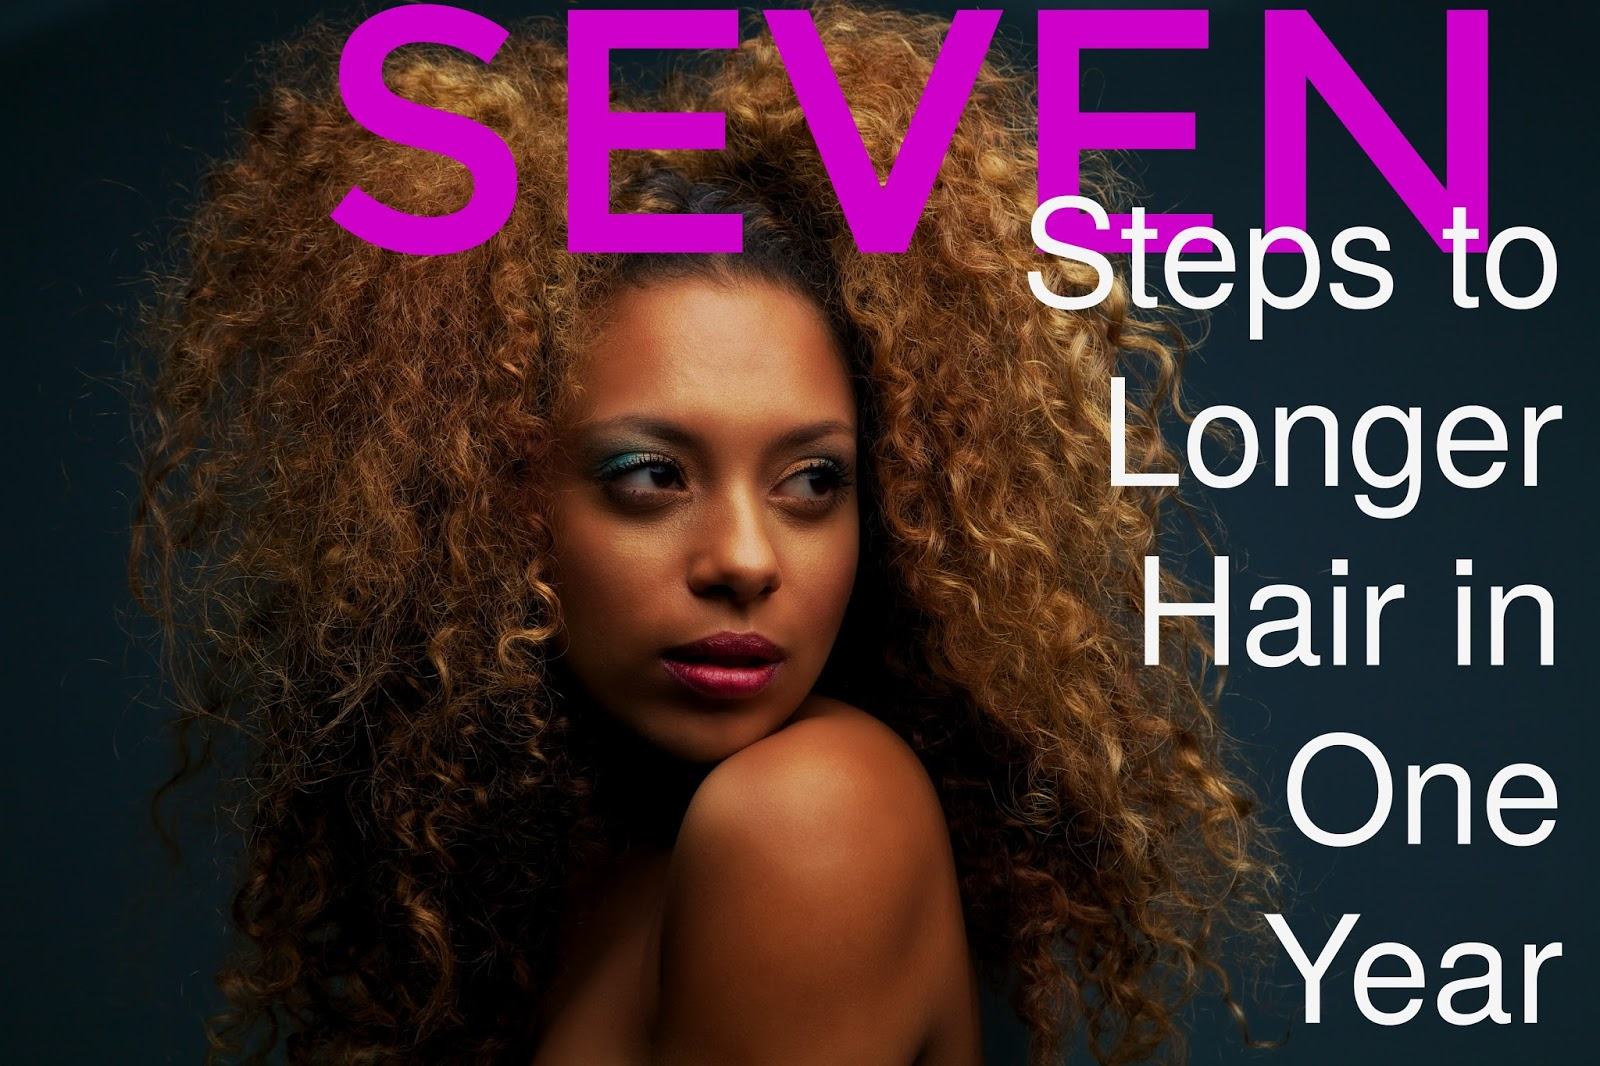 7 Steps to Long Hair in One Year Easily! No, hair does not grow overnight, but there are clear tips that will save your strands and allow them to thrive.